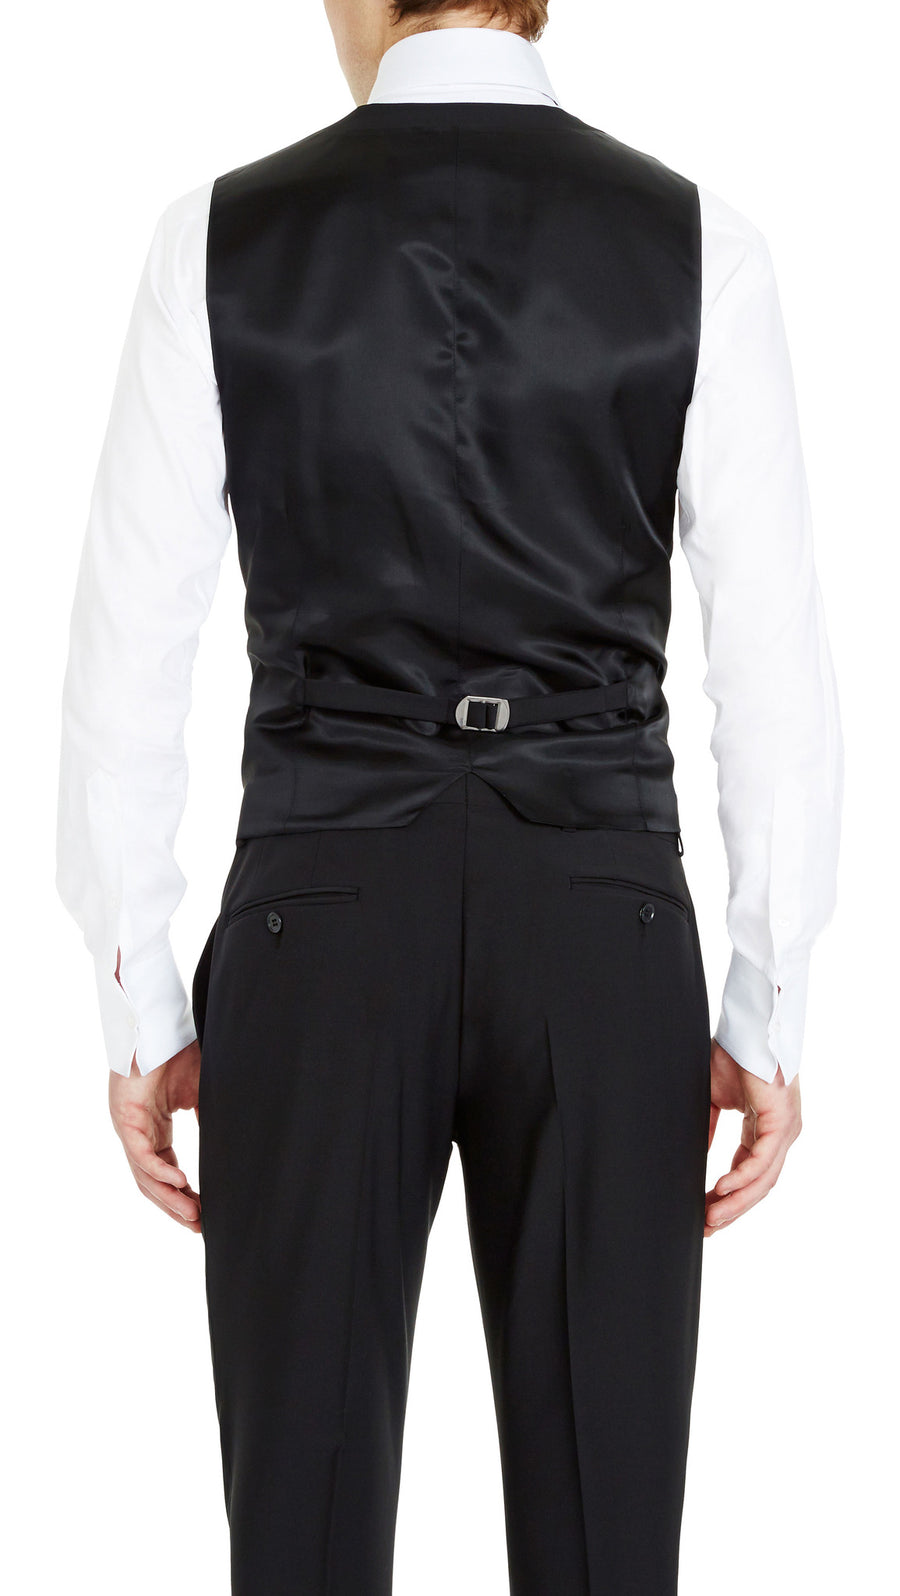 Blackjacket Skinny Fit Vest in Black - Ron Bennett Menswear  - 1